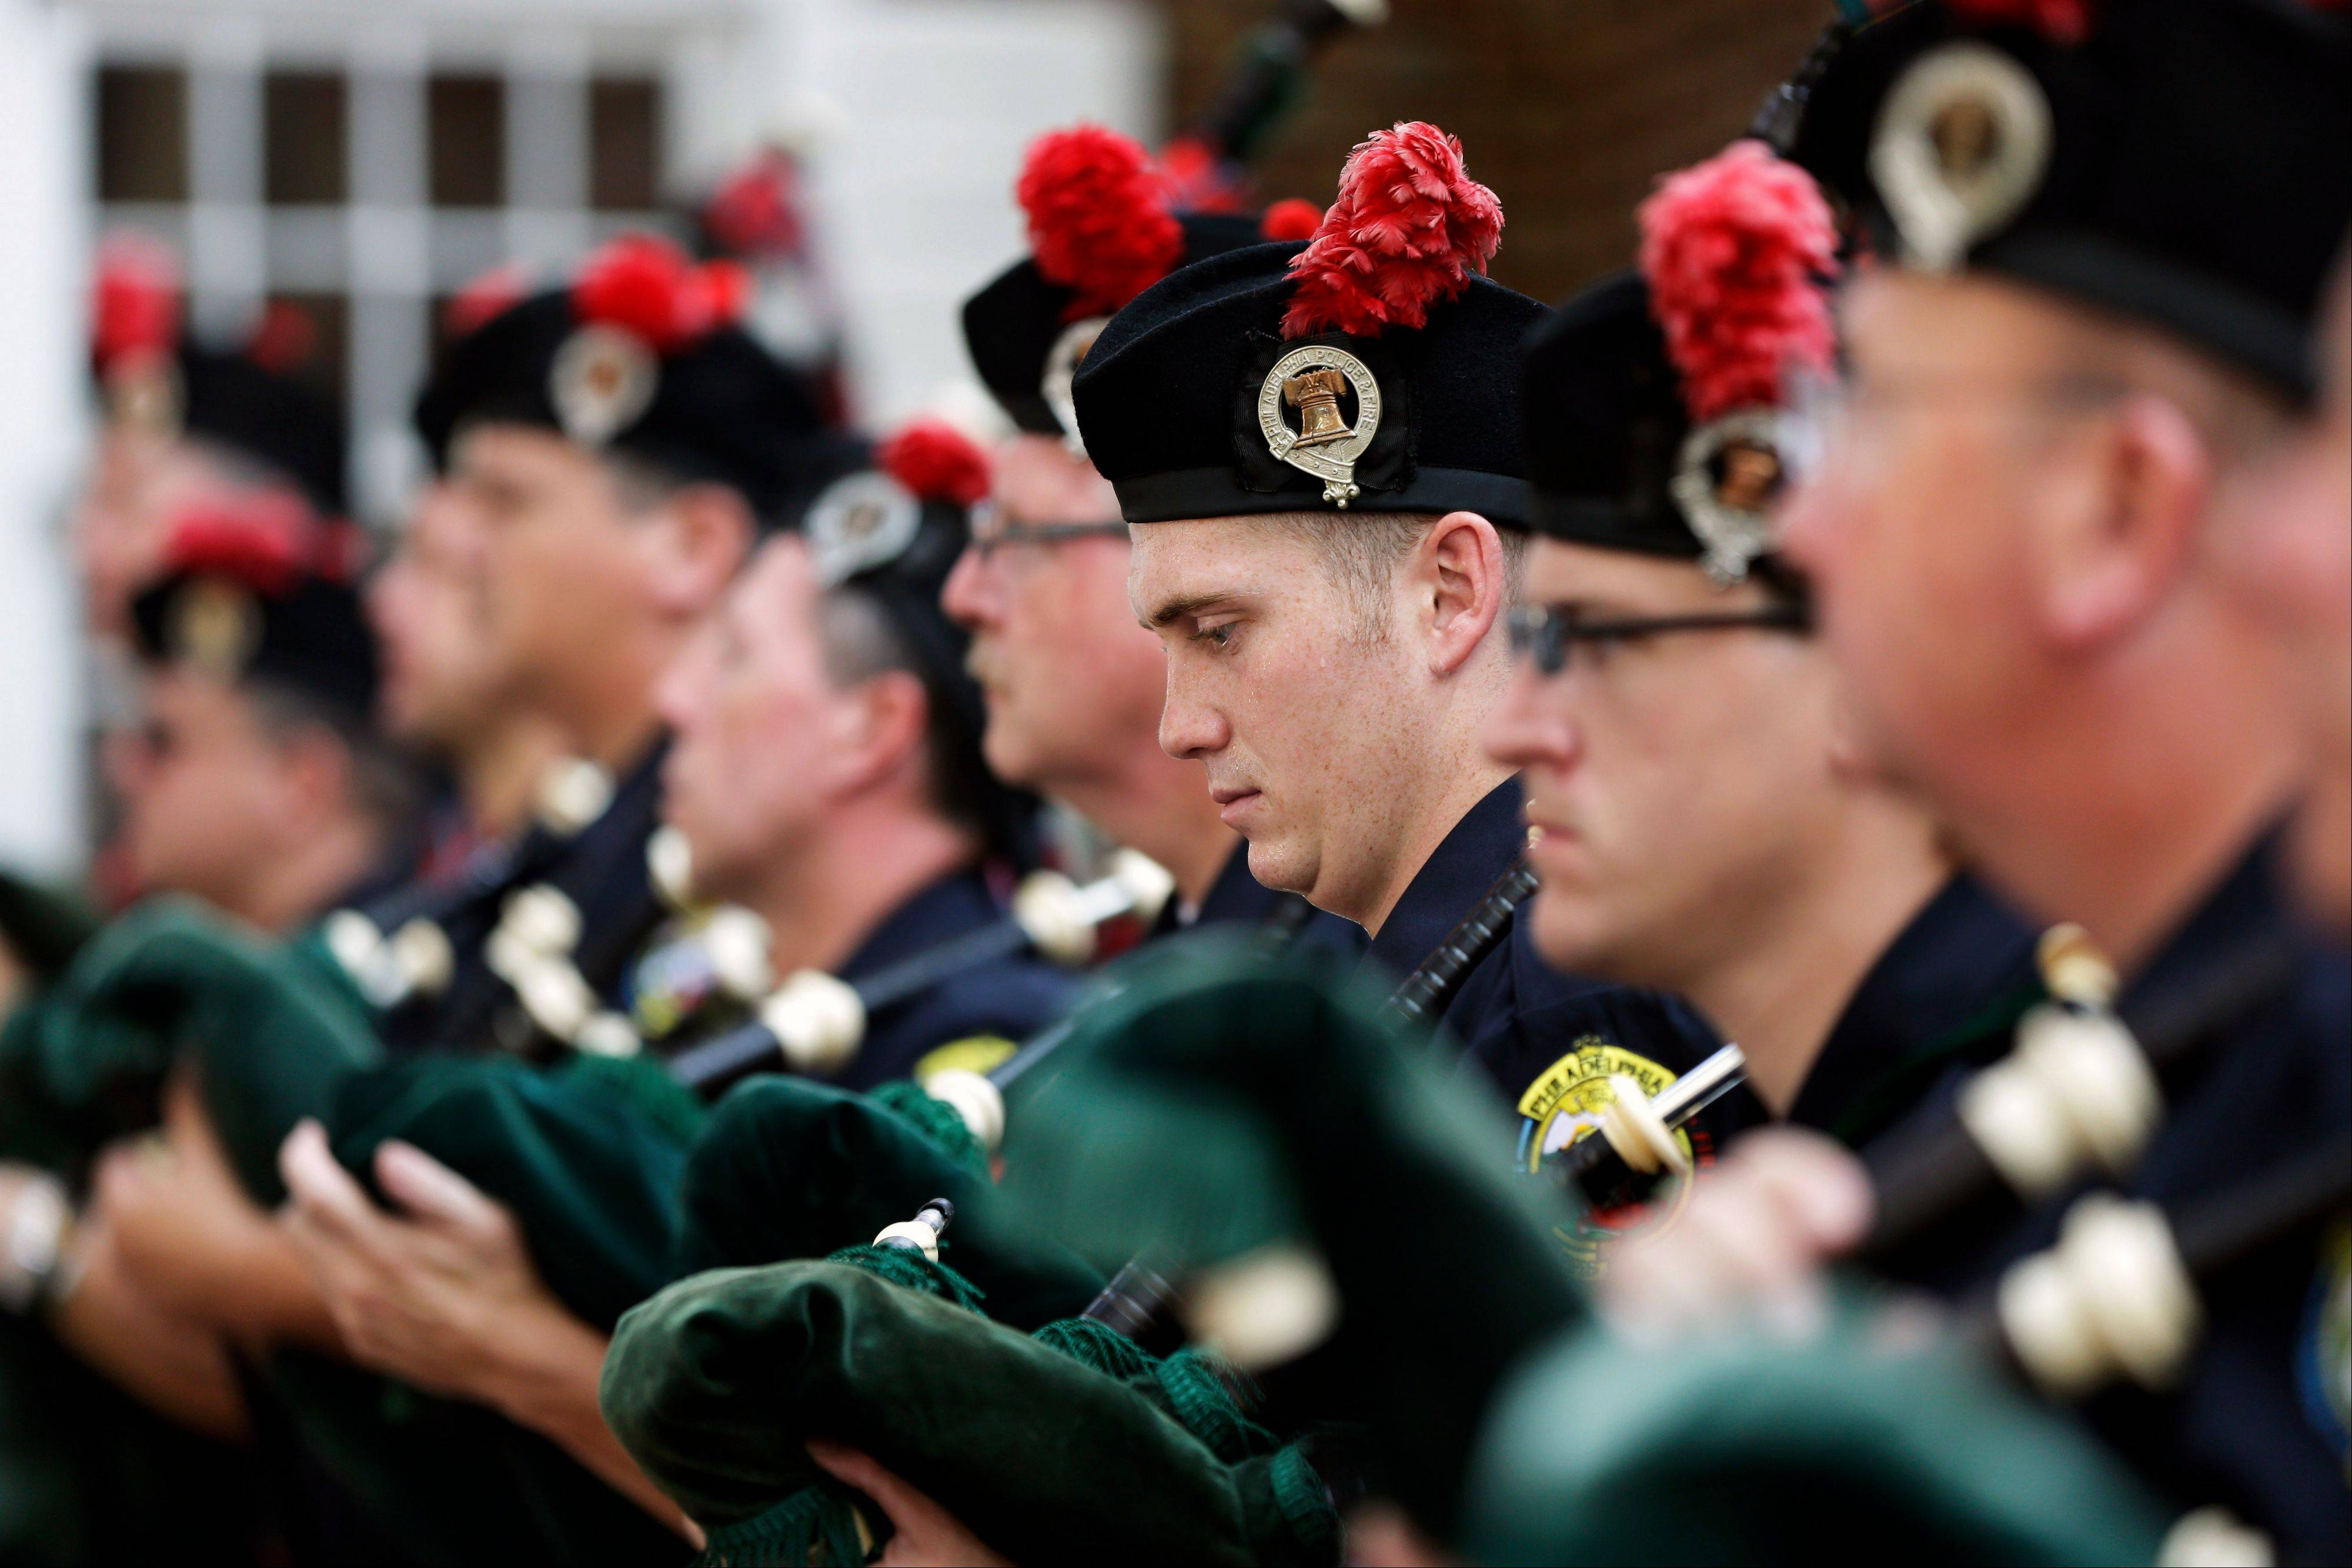 Members of the Philadelphia Police & Fire Pipes & Drums listen to remarks during a ceremony Wednesday, Sept. 11, 2013, marking the 12th anniversary of the Sept. 11 terrorist attacks at the Betsy Ross House in Philadelphia.